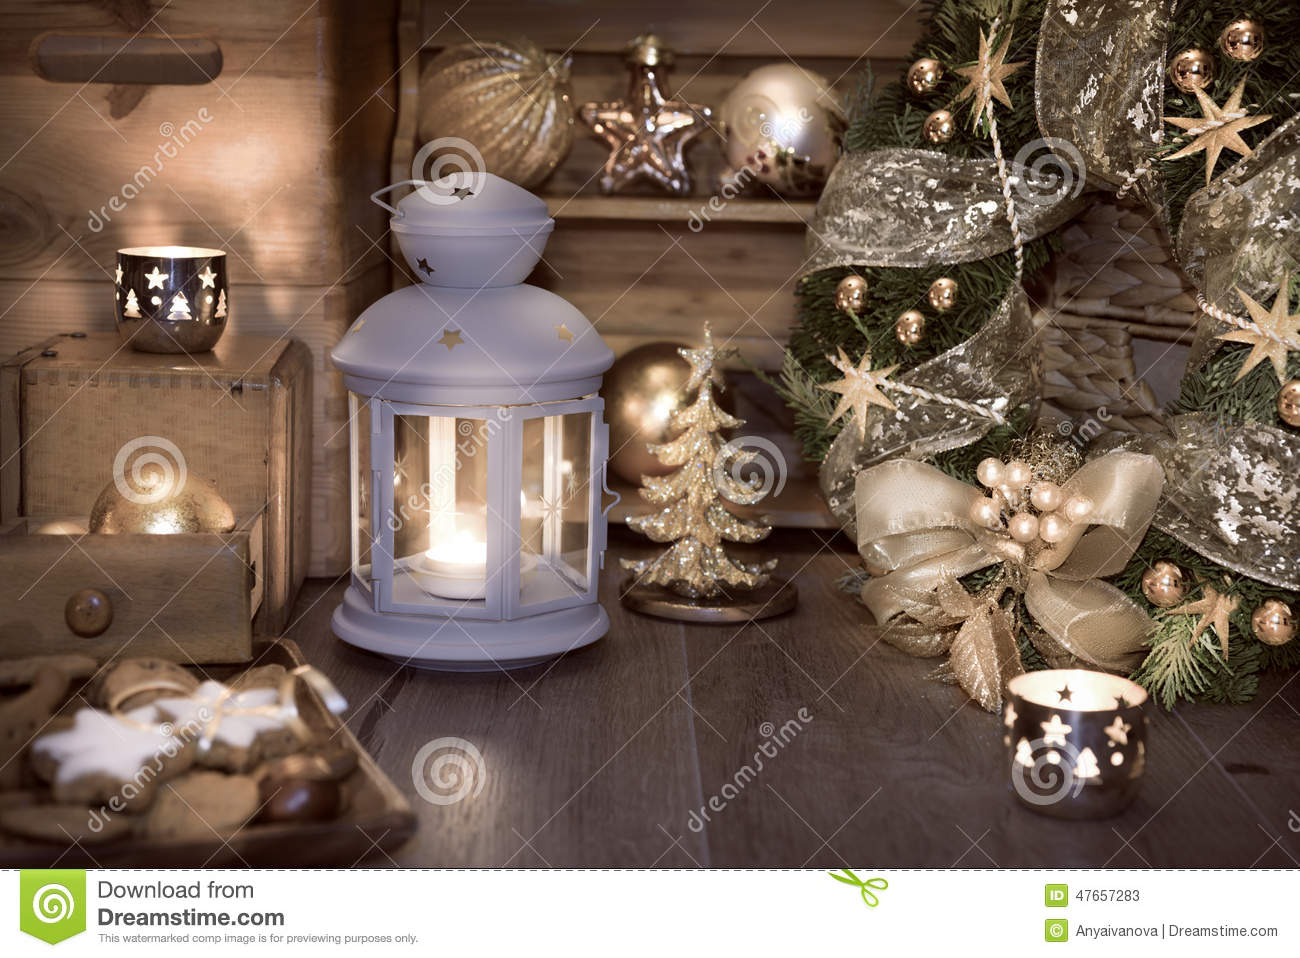 Decorare Candele Natale : Lanterna candele e decorazioni decorative di natale immagine